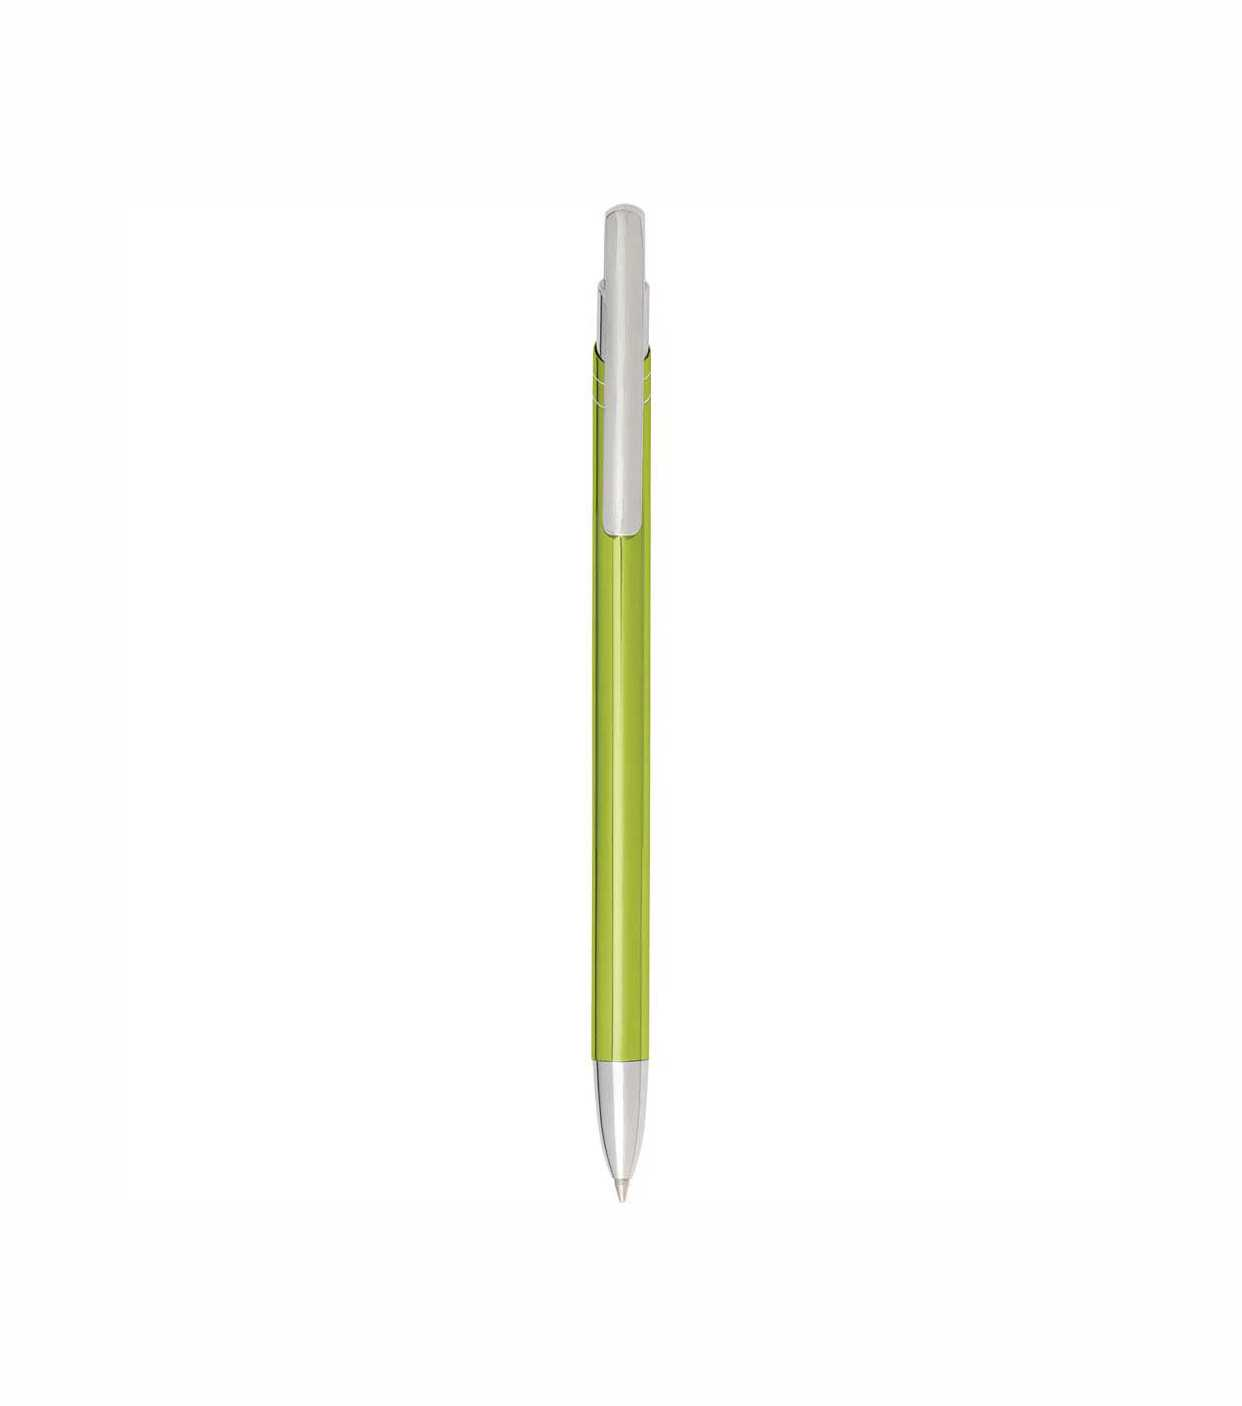 Aluminium click-action ballpoint pen with silver coloured accents. - Lime giv-798319